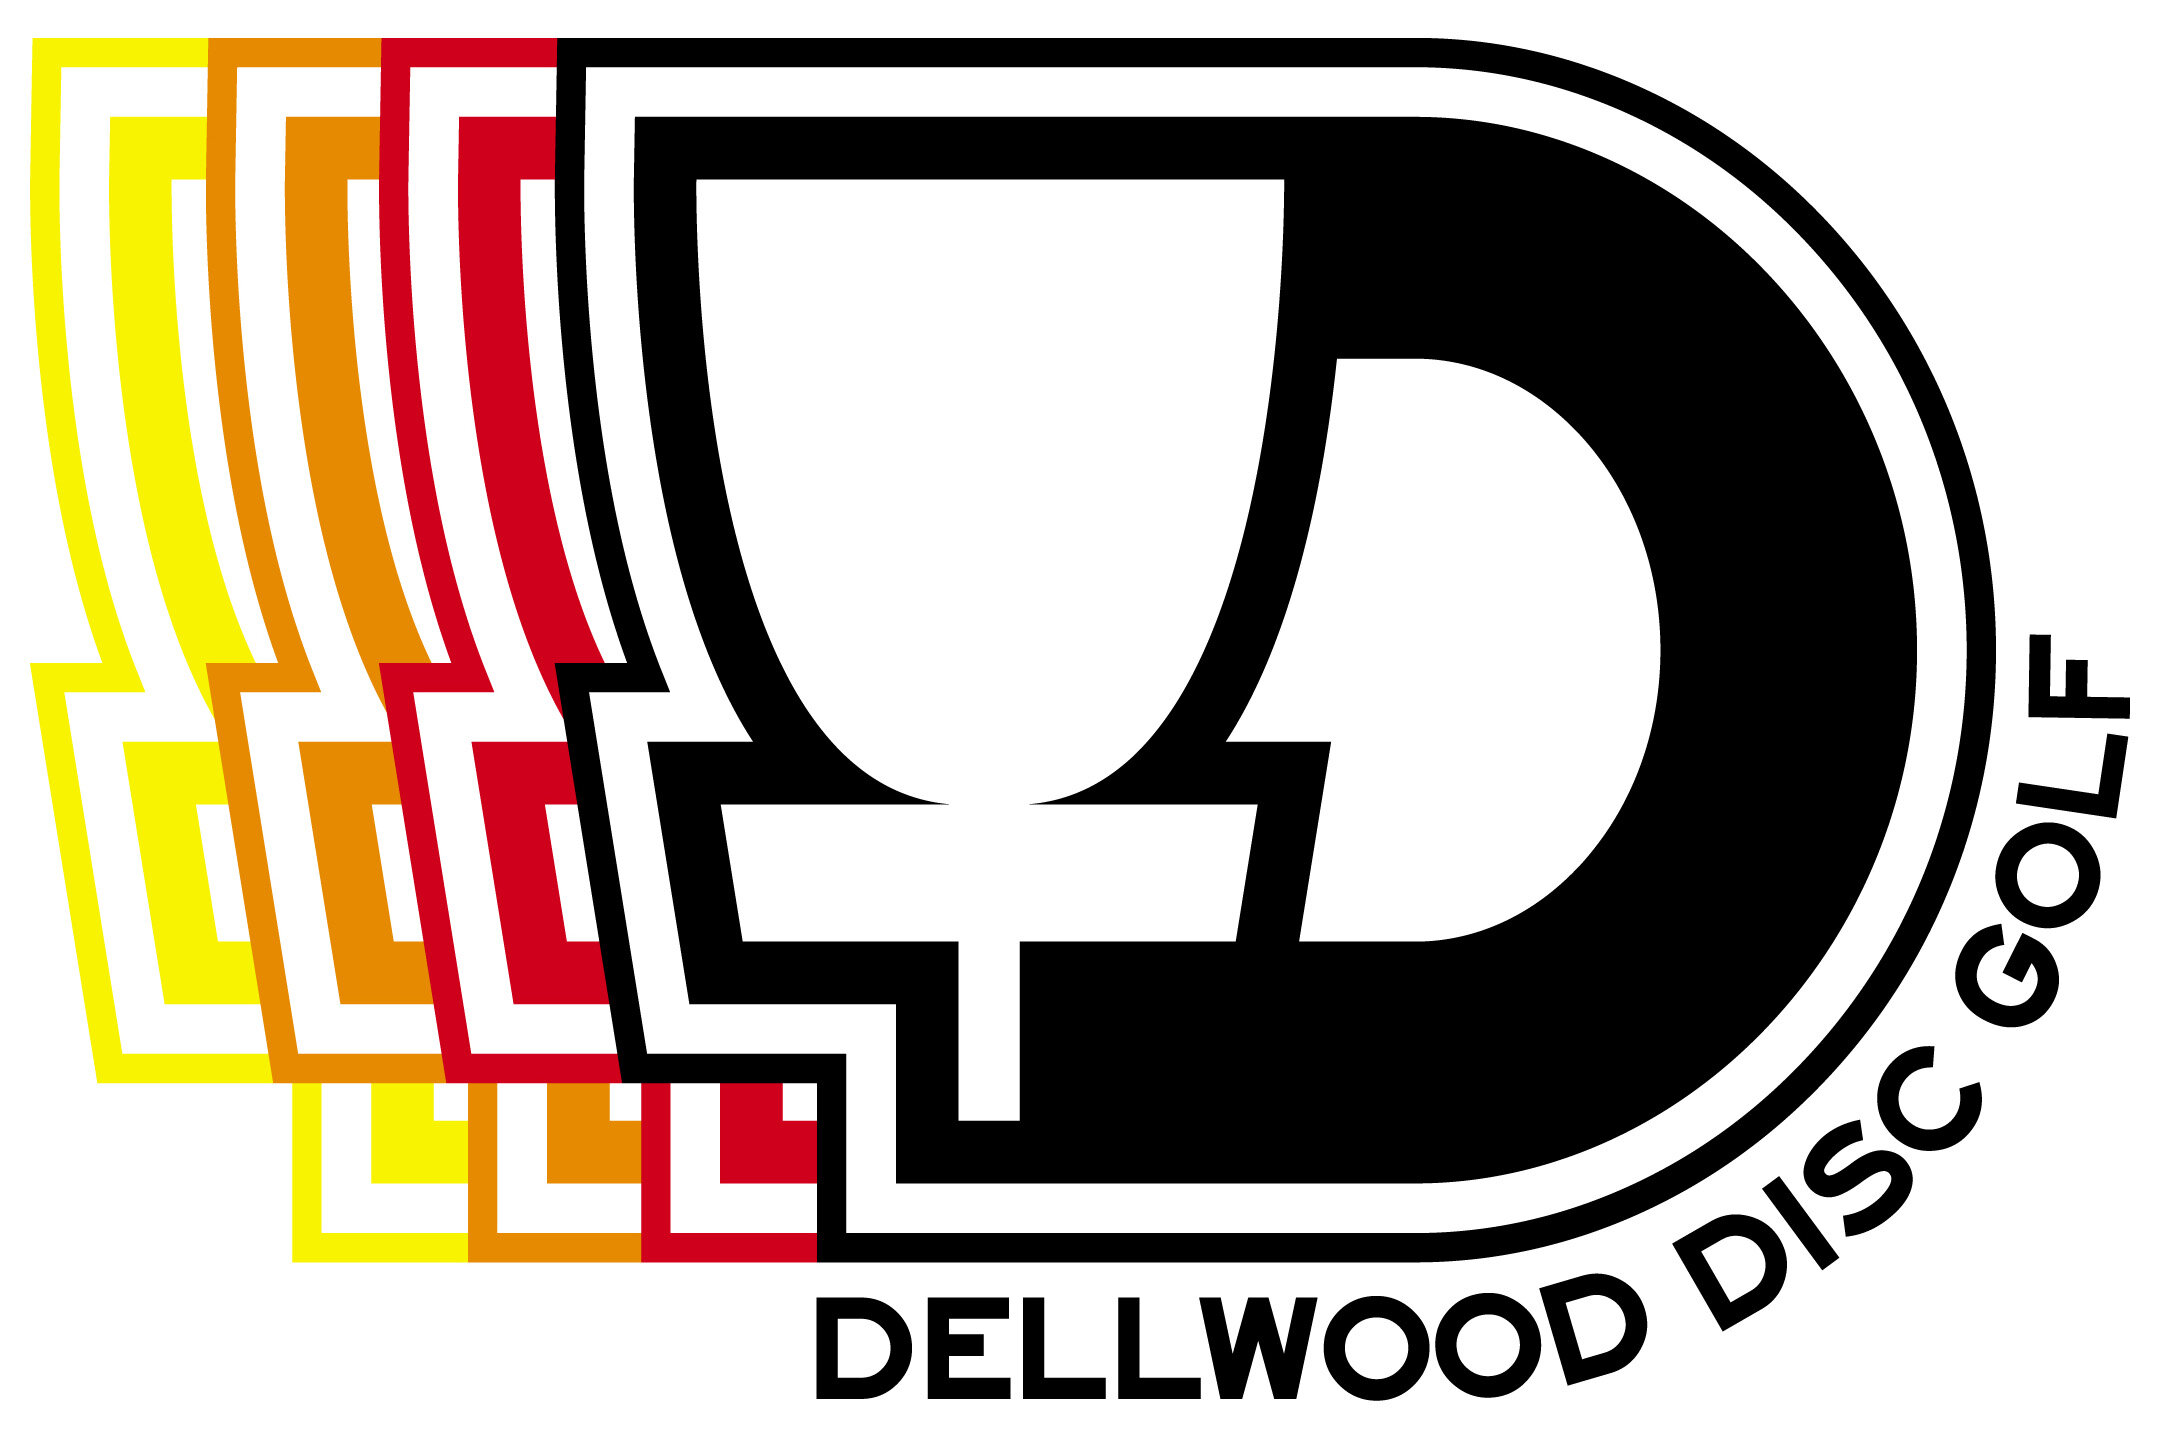 About  - Located on The Canyons Disc Golf Course in Lockport, Dellwood Disc Golf is the first of its kind in Illinois.